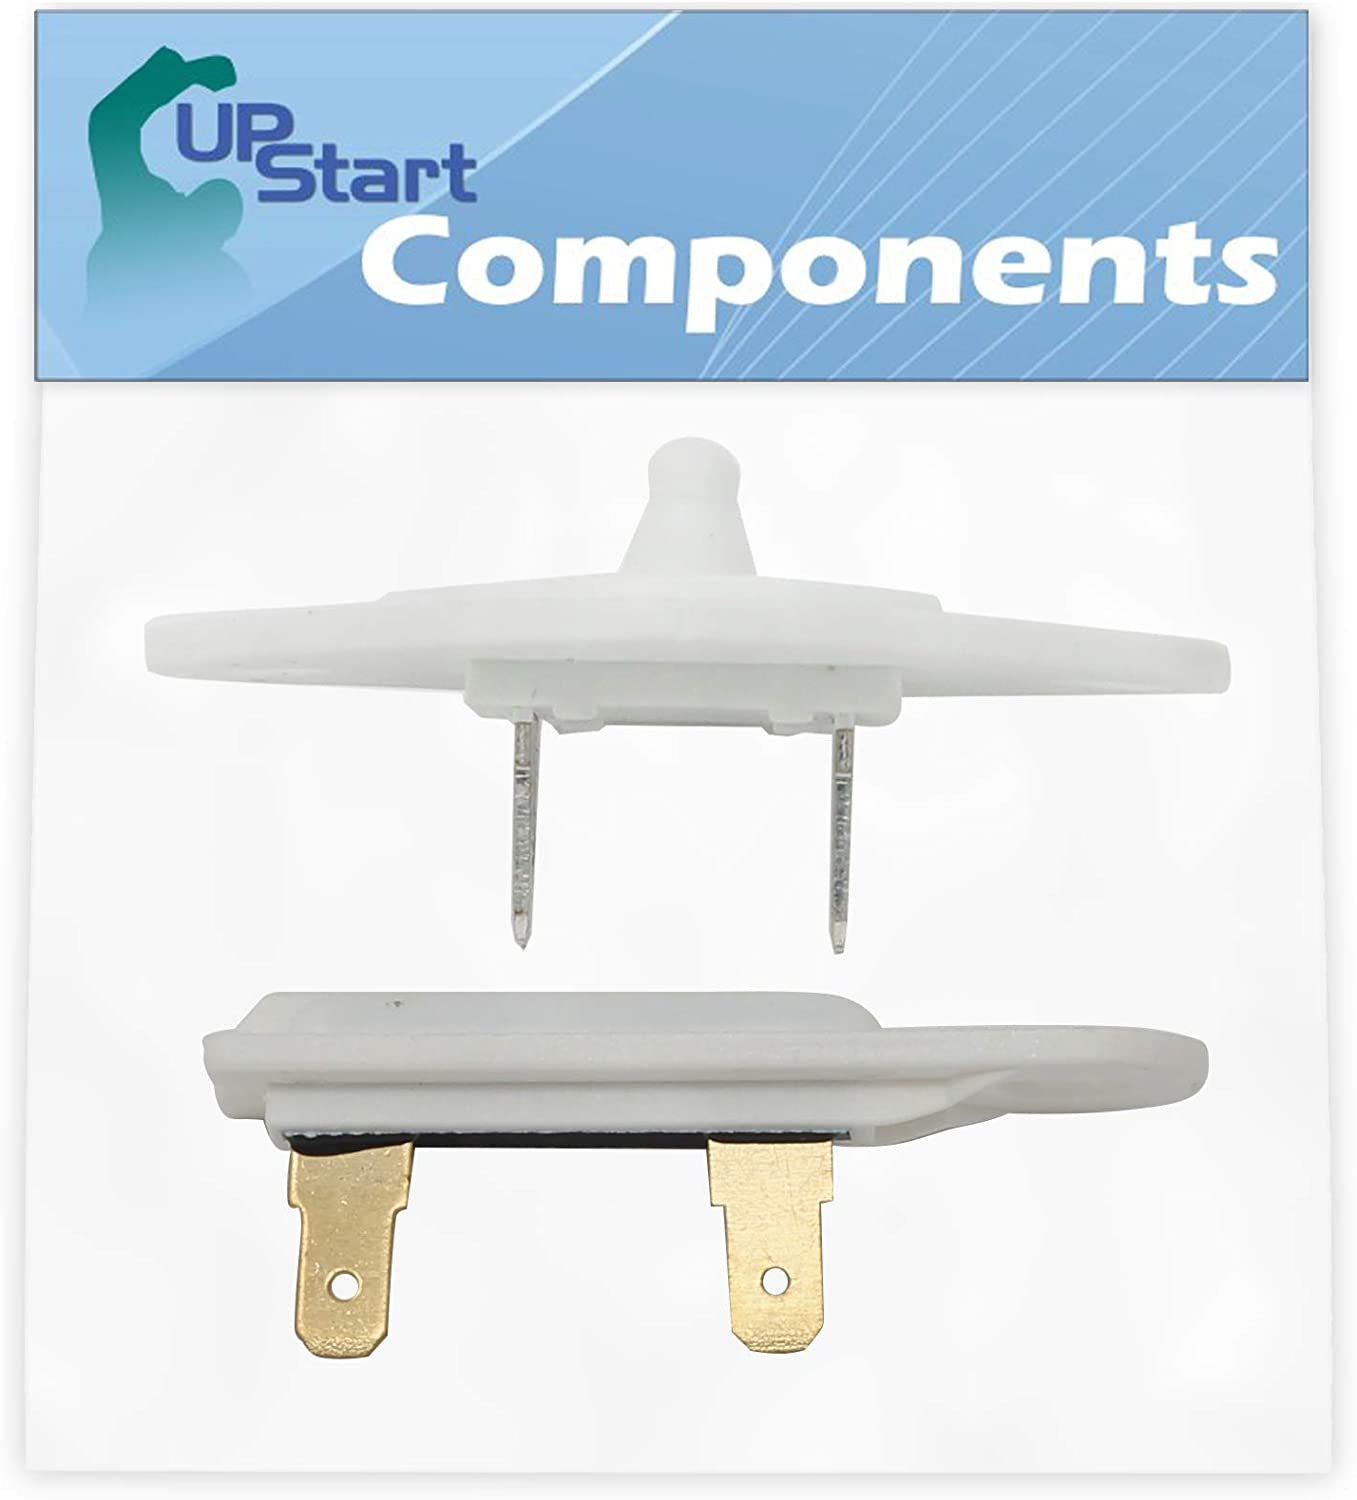 8577274 Dryer Thermistor & 3392519 Thermal Fuse Replacement for Whirlpool WGD5500XW0 Dryer - Compatible with 3976615 WP8577274 Thermistor & WP3392519 Thermal Fuse - UpStart Components Brand